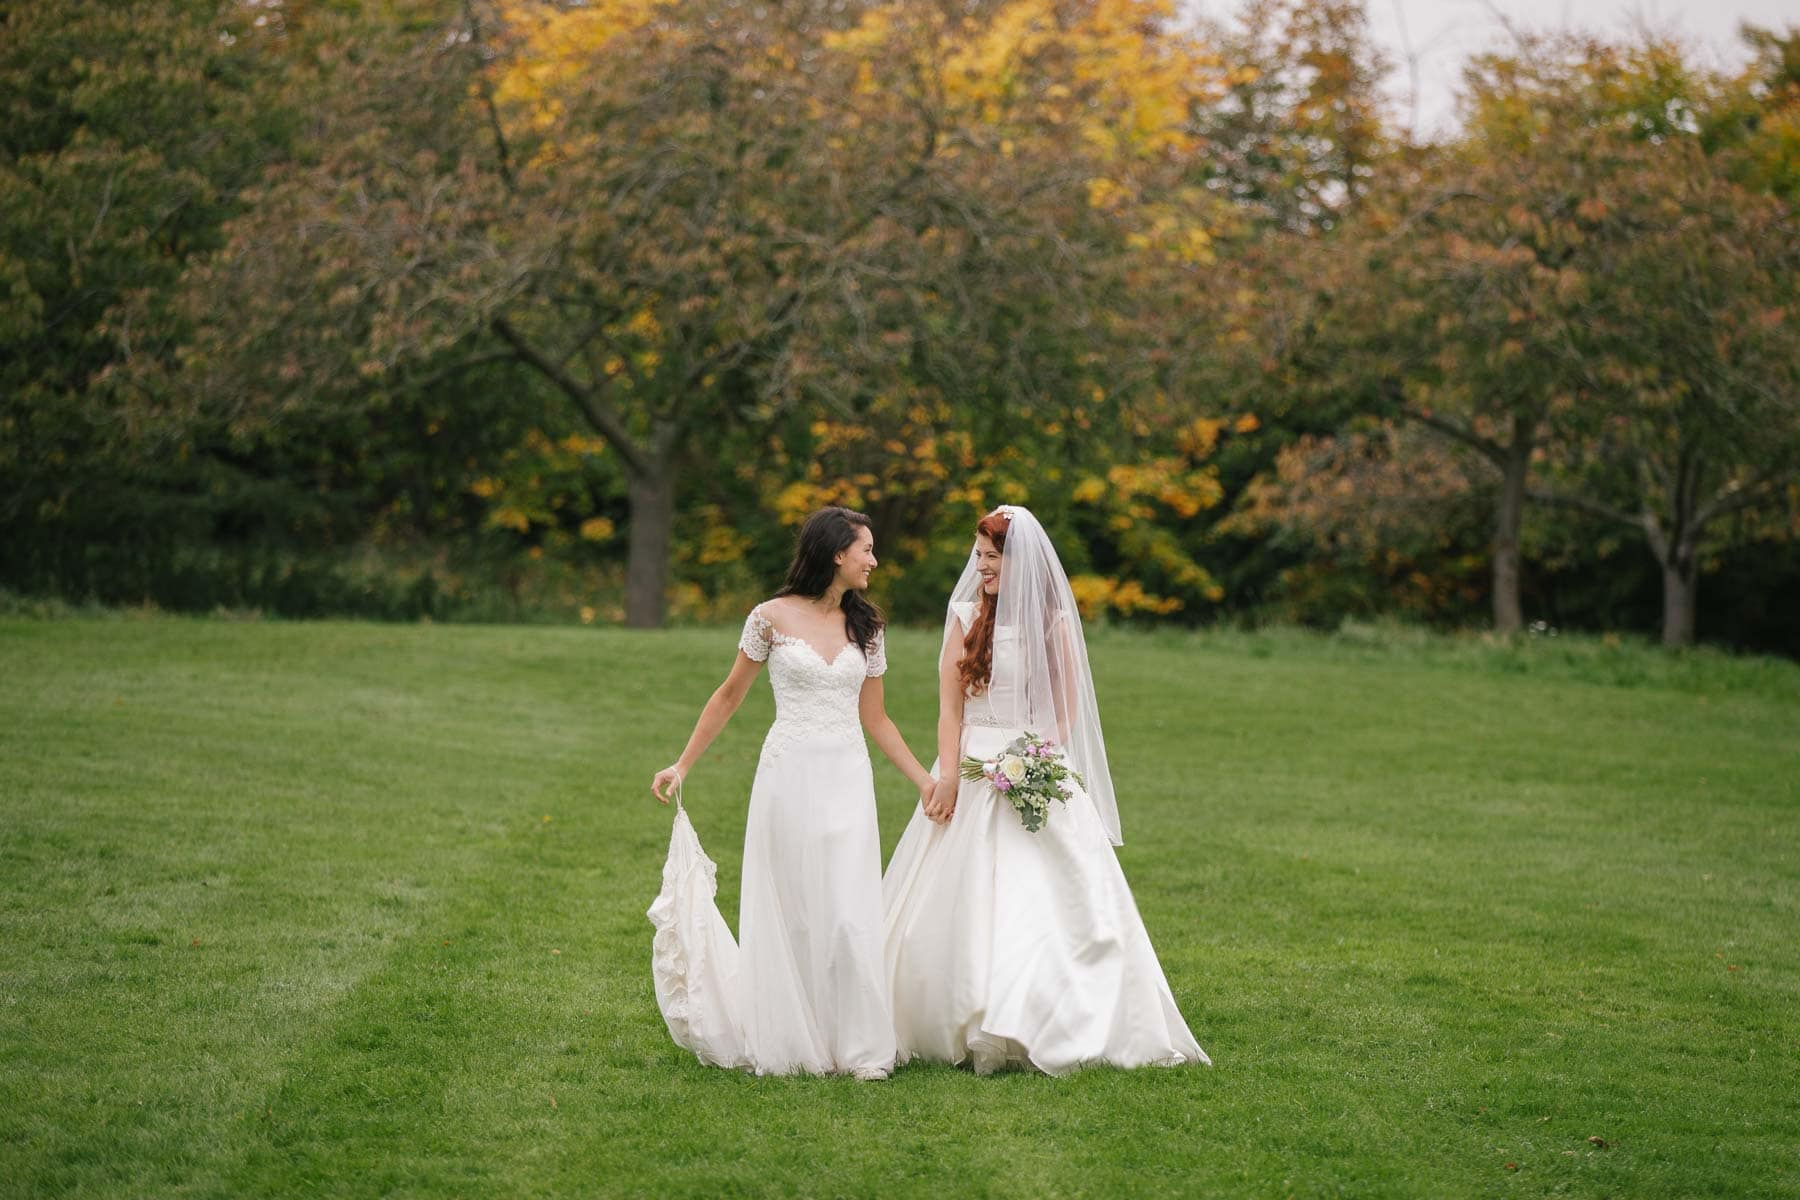 Same-sex bridal couple walk hand in hand through a Brighton park with autumnal trees in the background